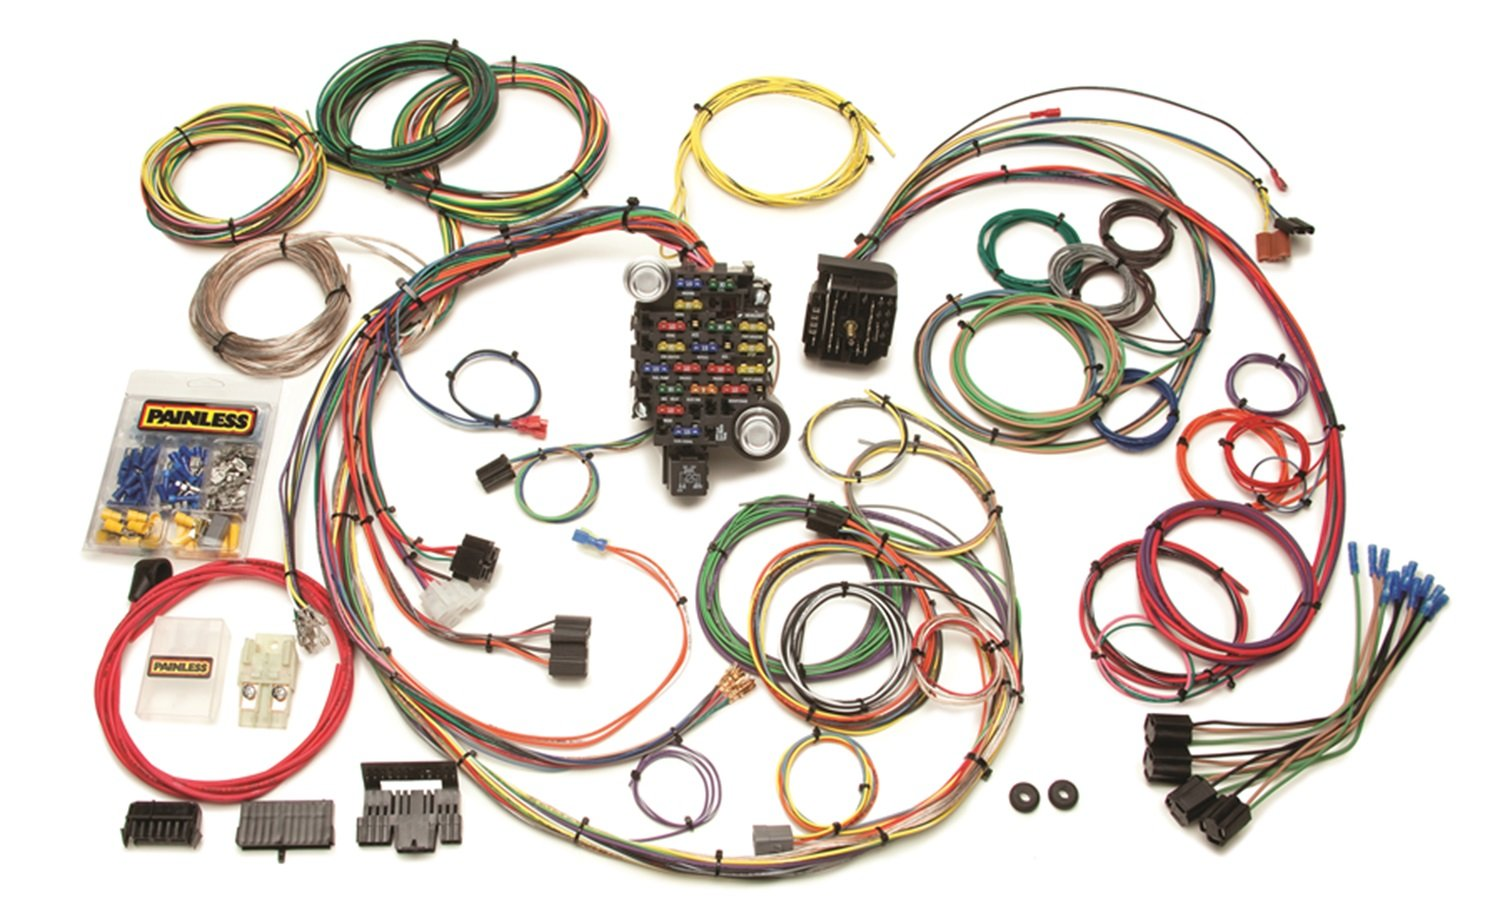 71RvMxx3qDL._SL1500_ amazon com painless 20102 custom wiring harness automotive painless wiring harness at crackthecode.co